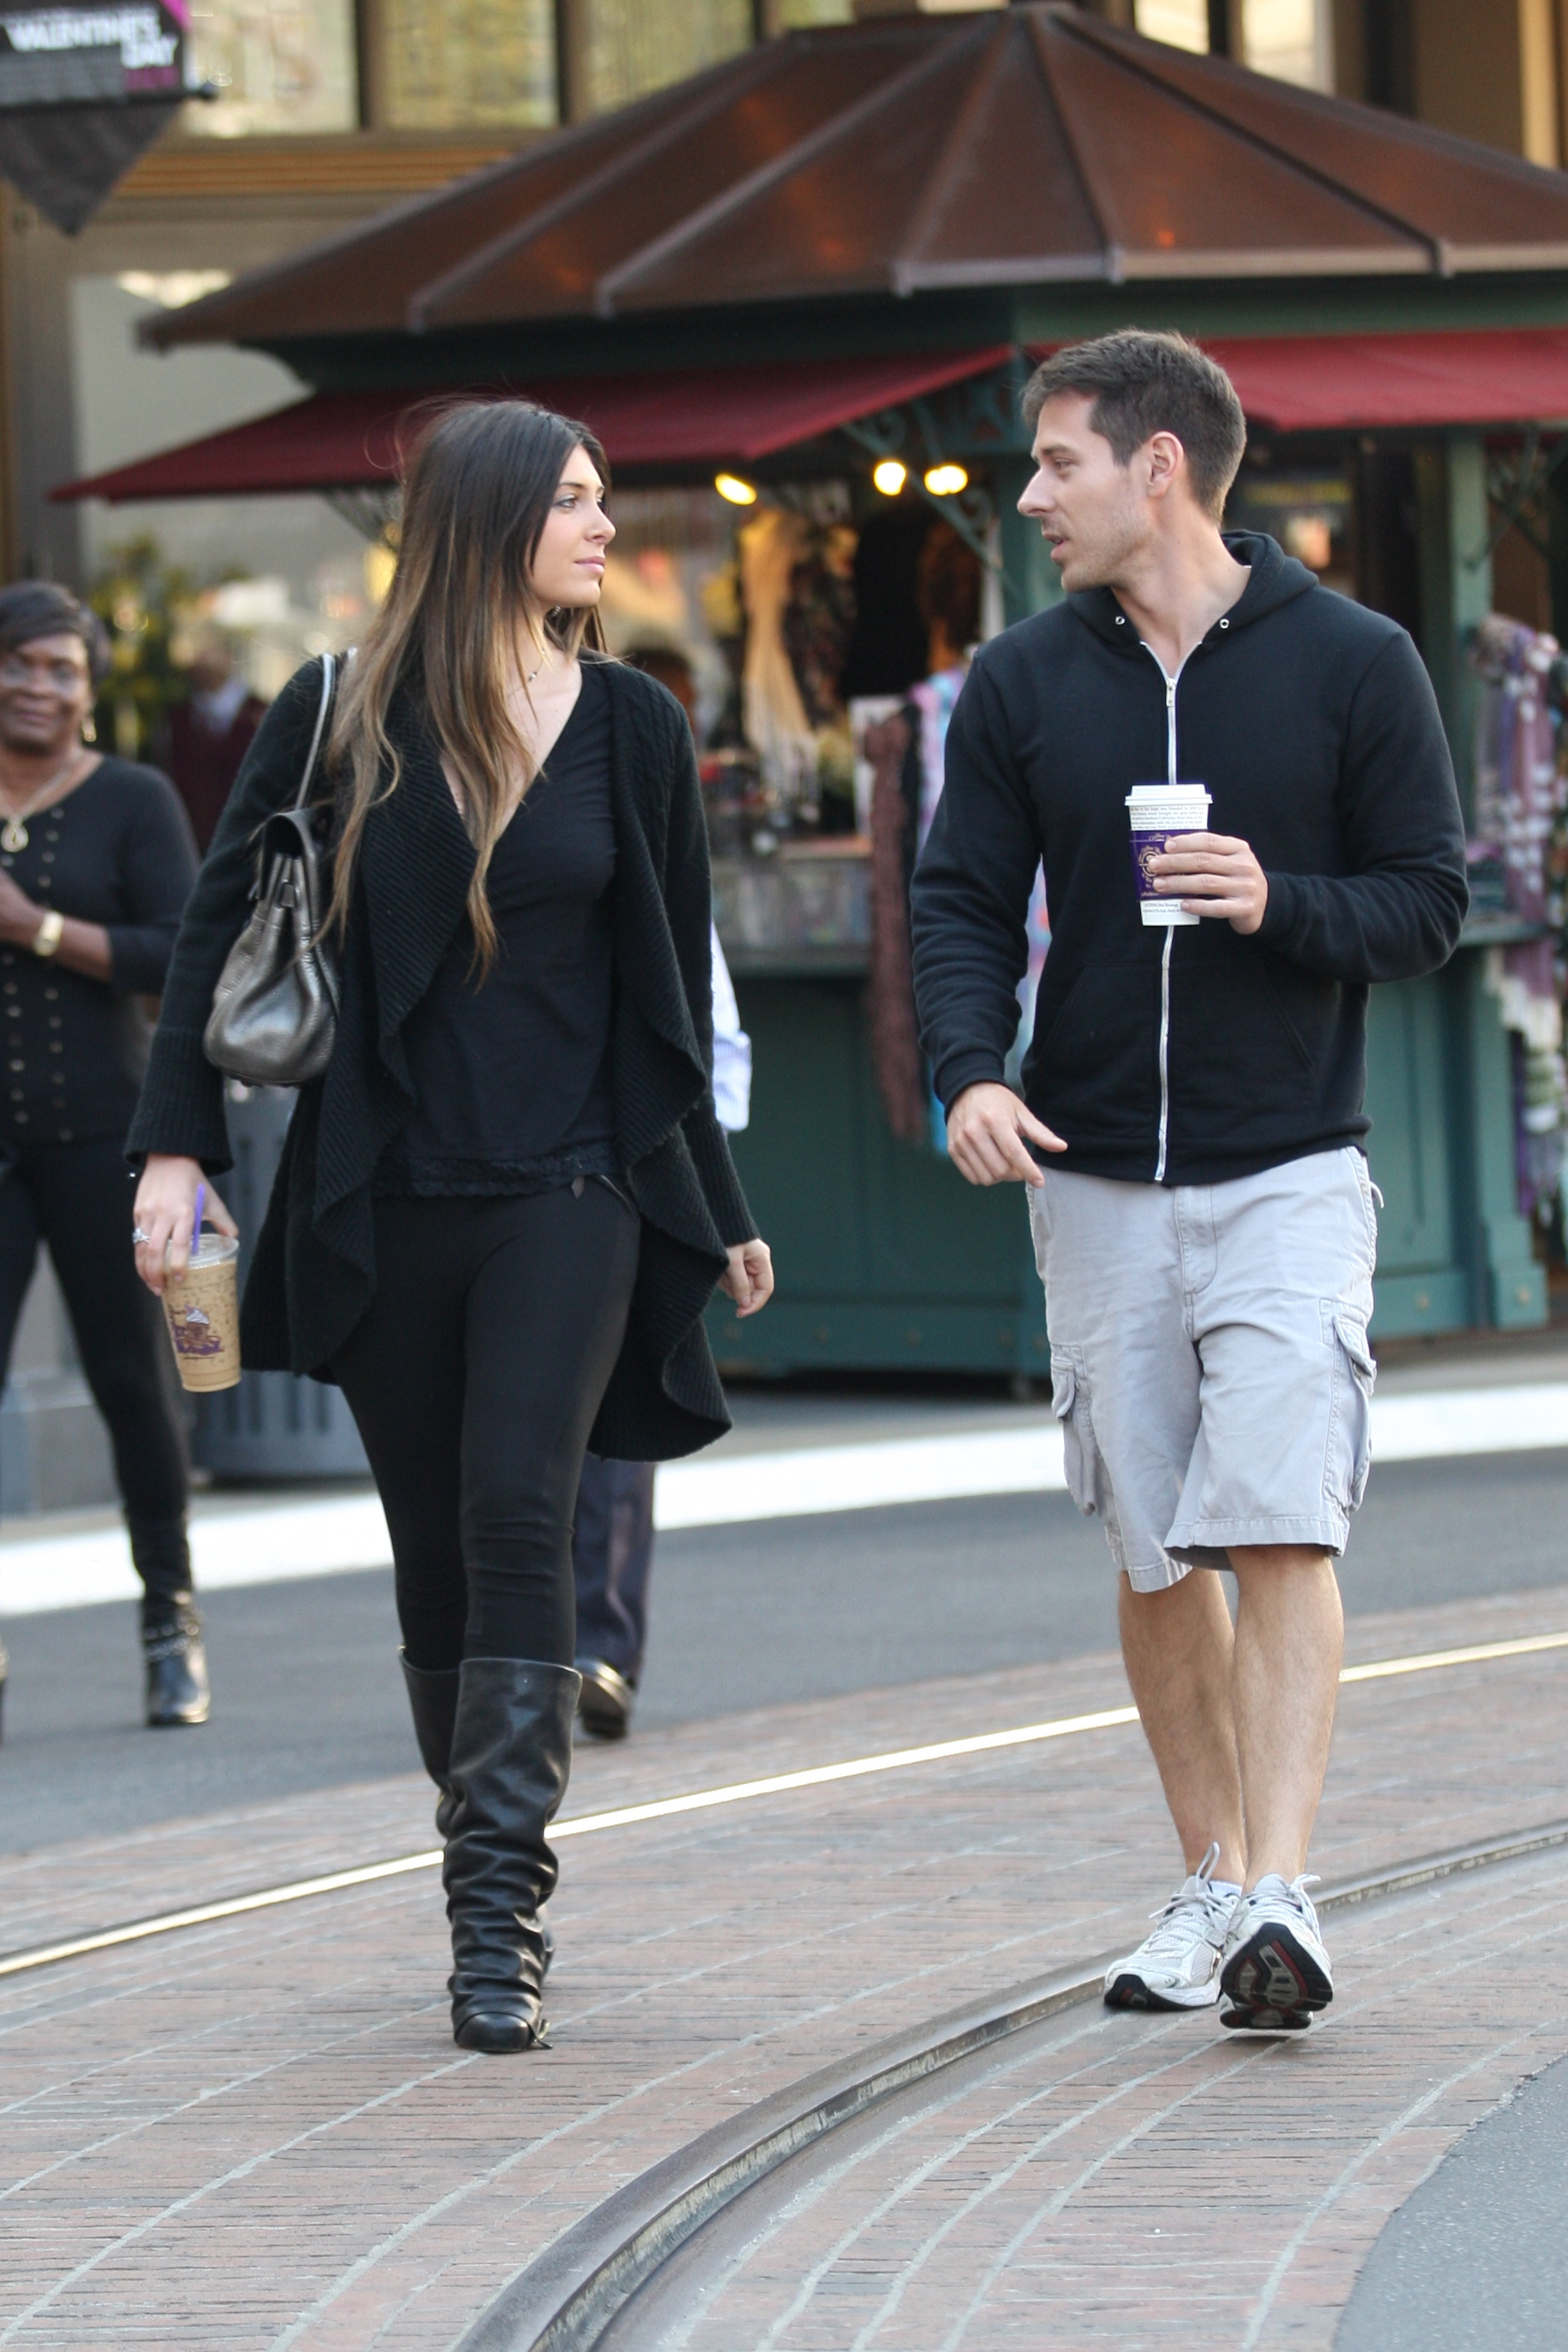 24905_celebrity-paradise.com-The_Elder-Brittny_Gastineau_2010-01-31_-_out_shopping_in_Hollywood_875_122_449lo.jpg